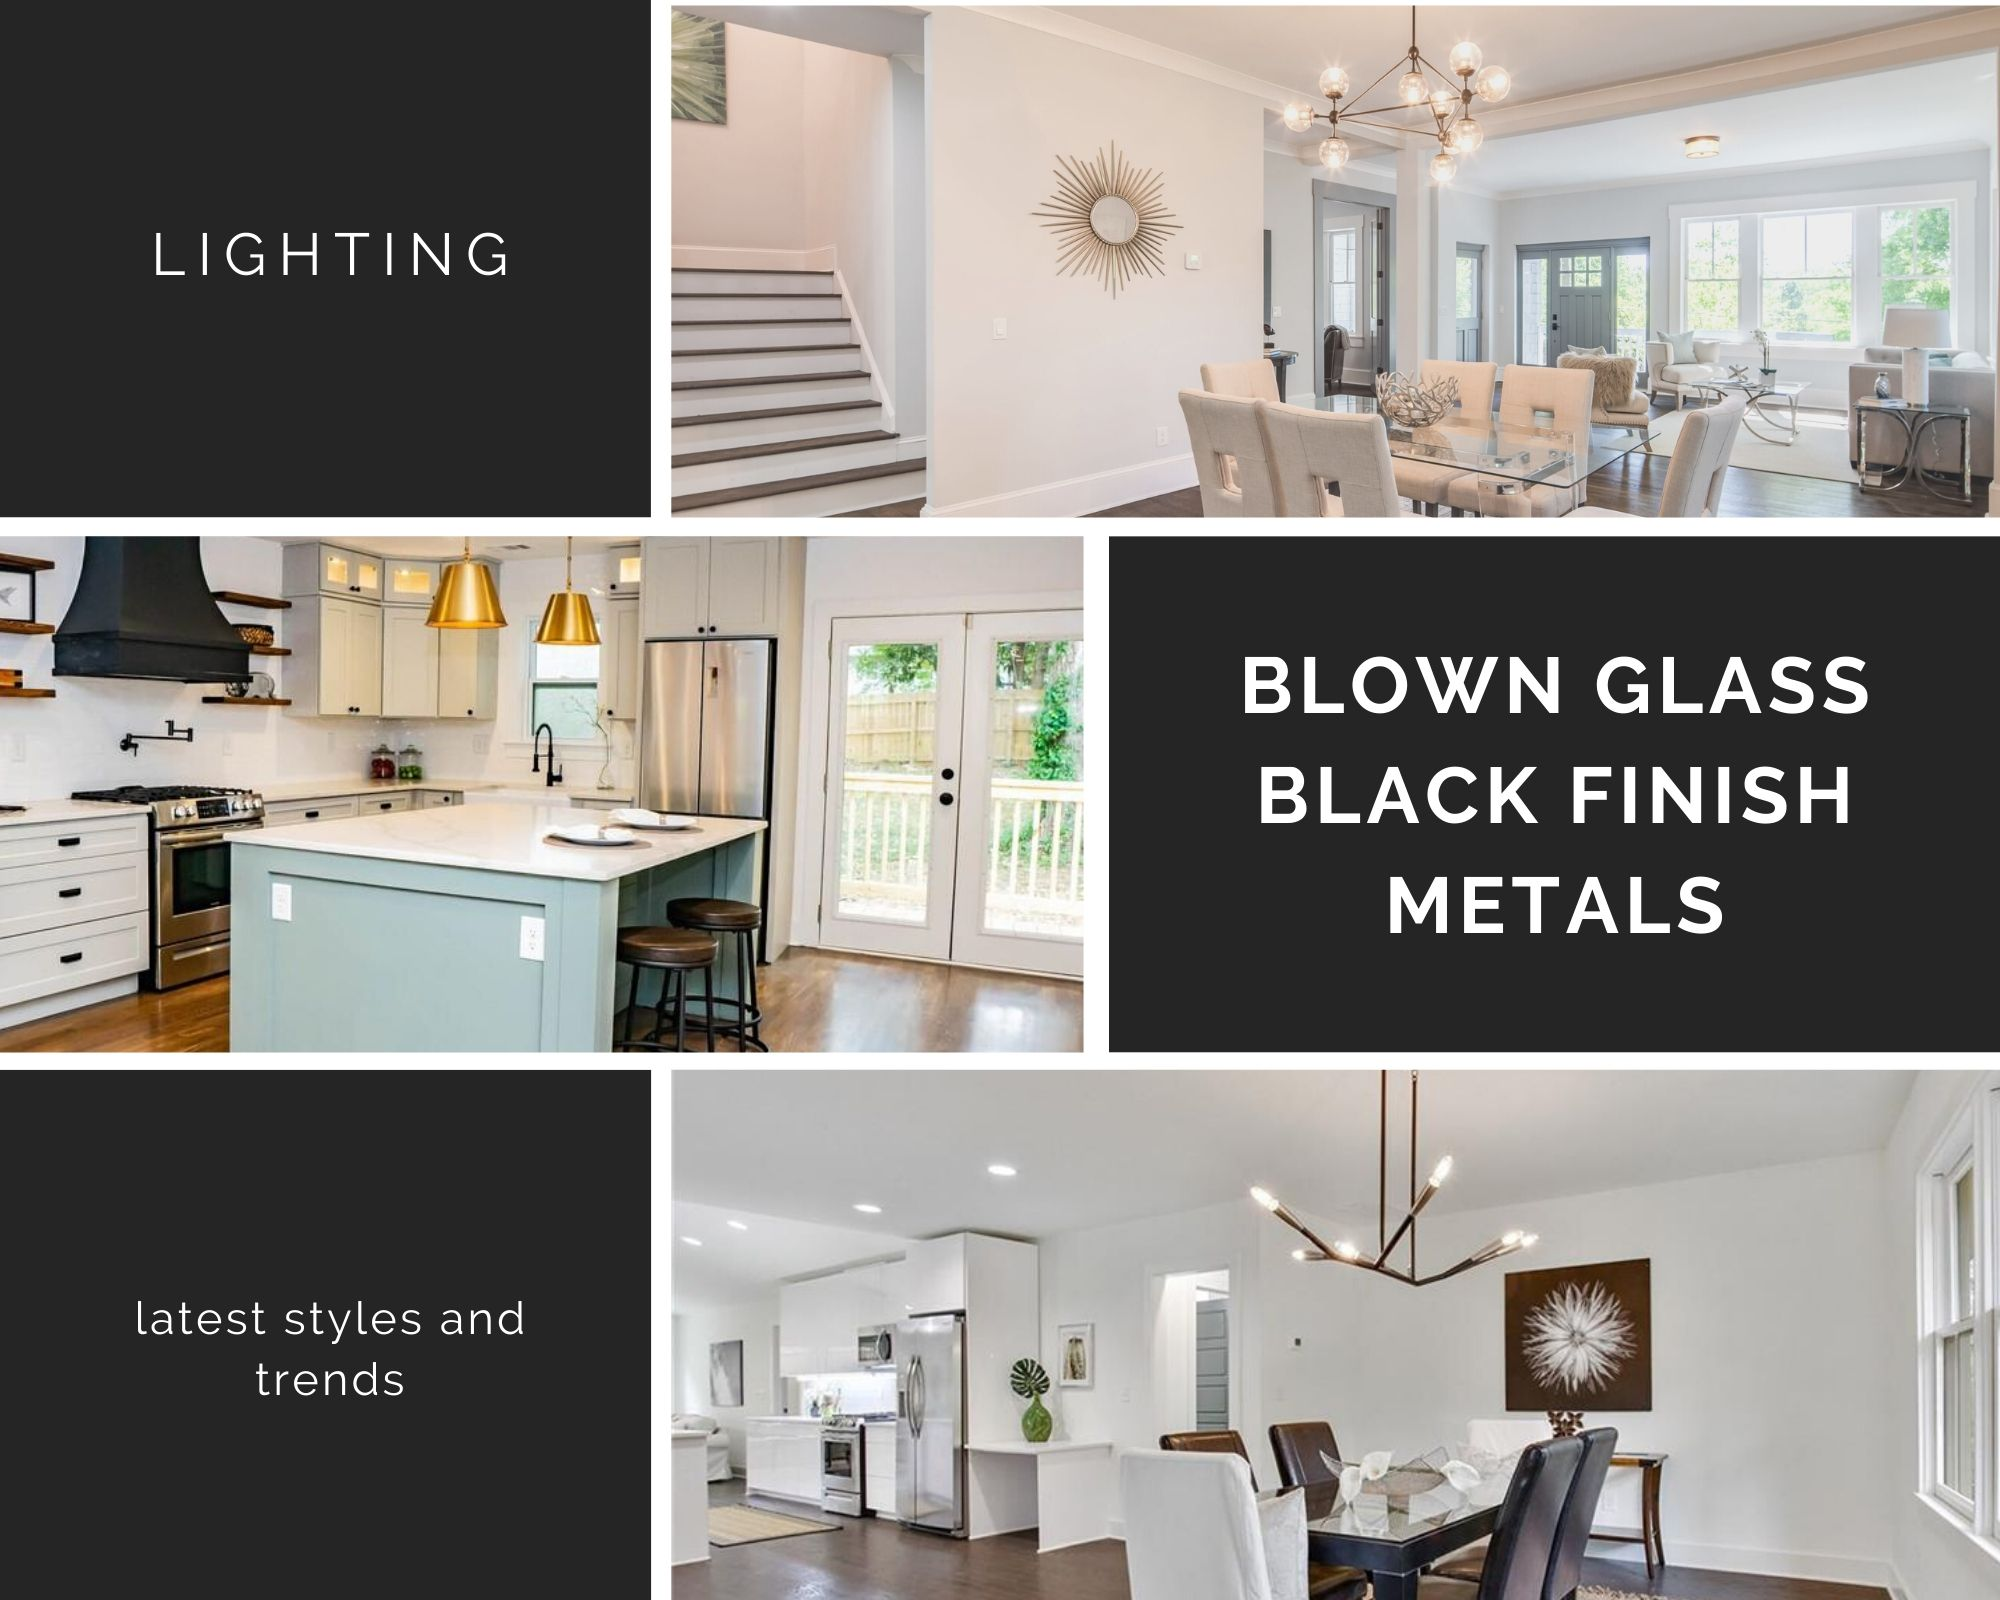 Featured image for blog featuring trending light fixtures